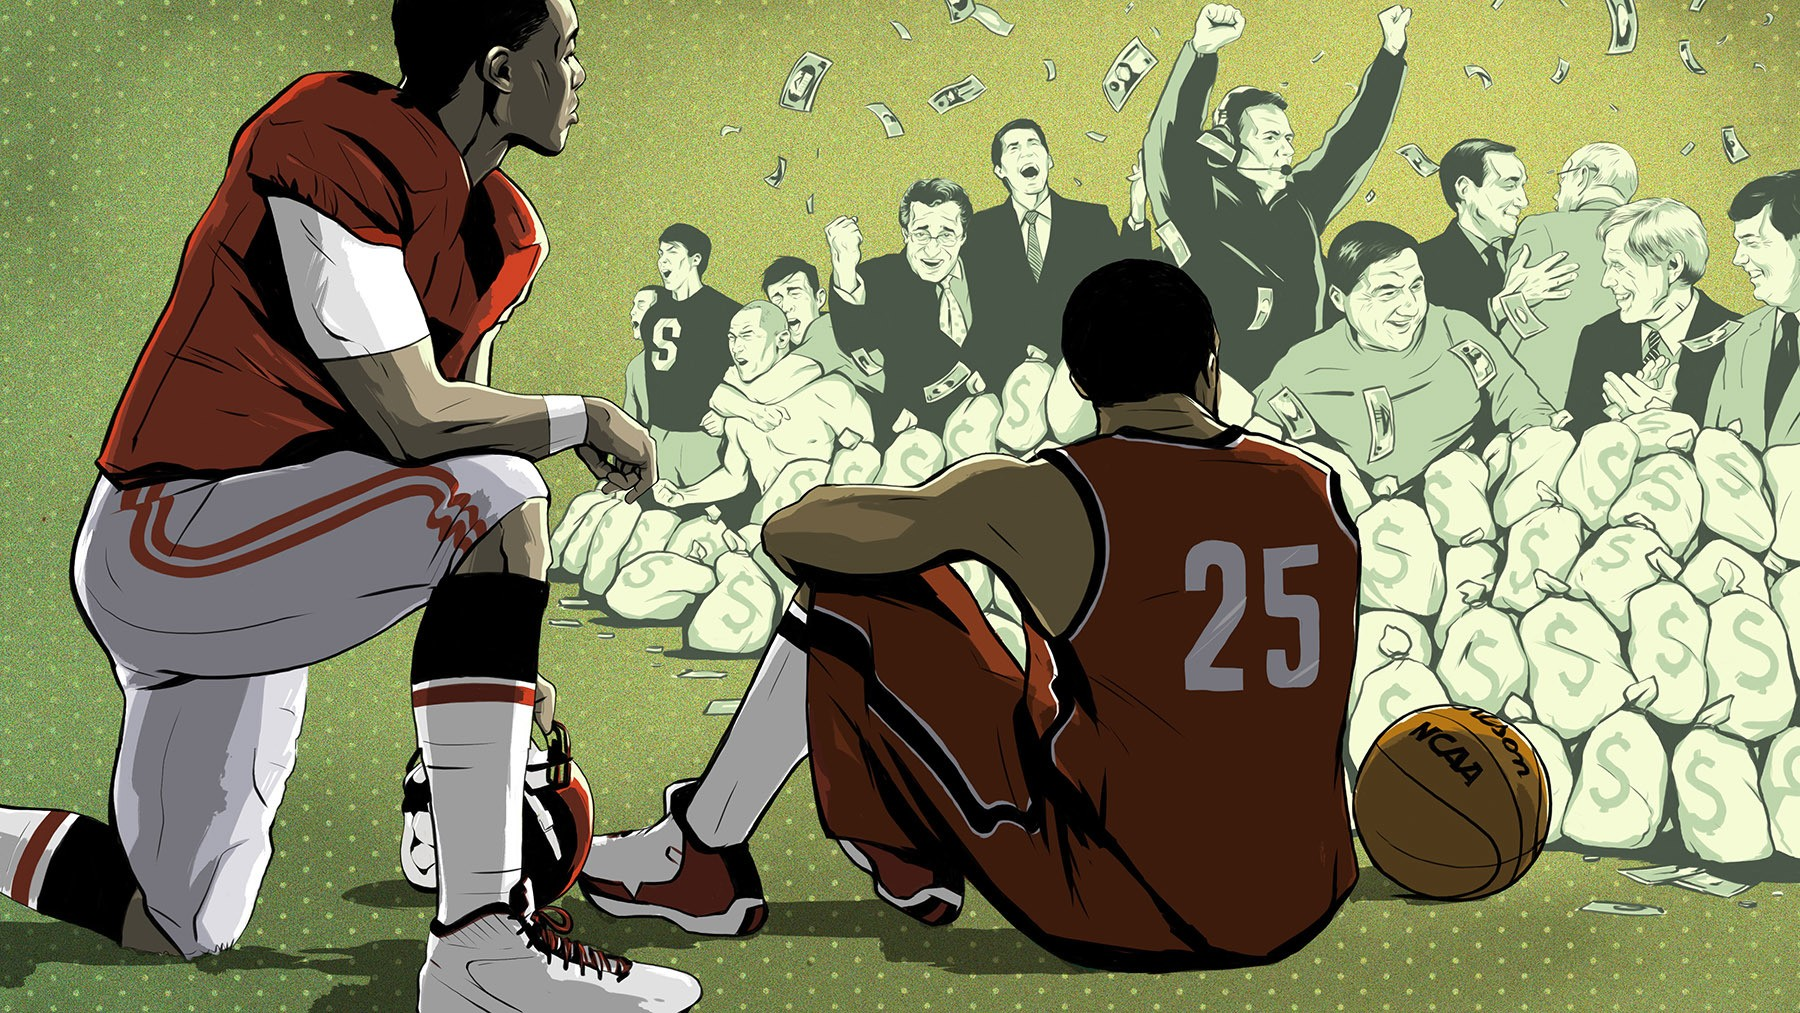 Four Years A Student-Athlete: The Racial Injustice of Big-Time College Sports